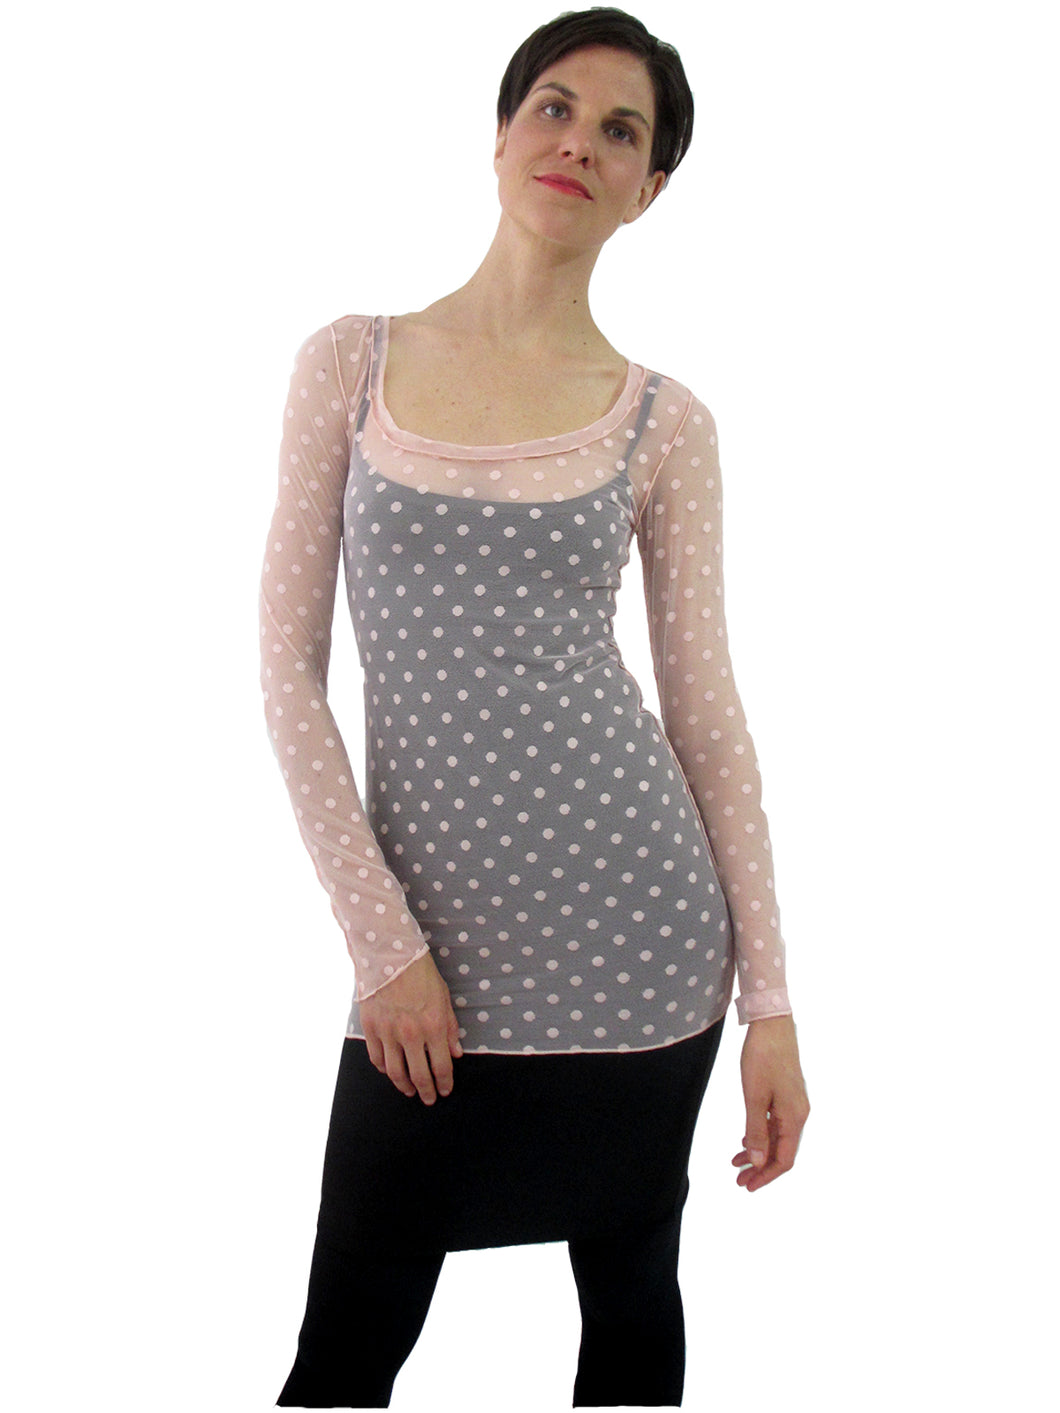 THE POLKA DOT MESH SHIRT - SCOOP NECK - LONG SLEEVE